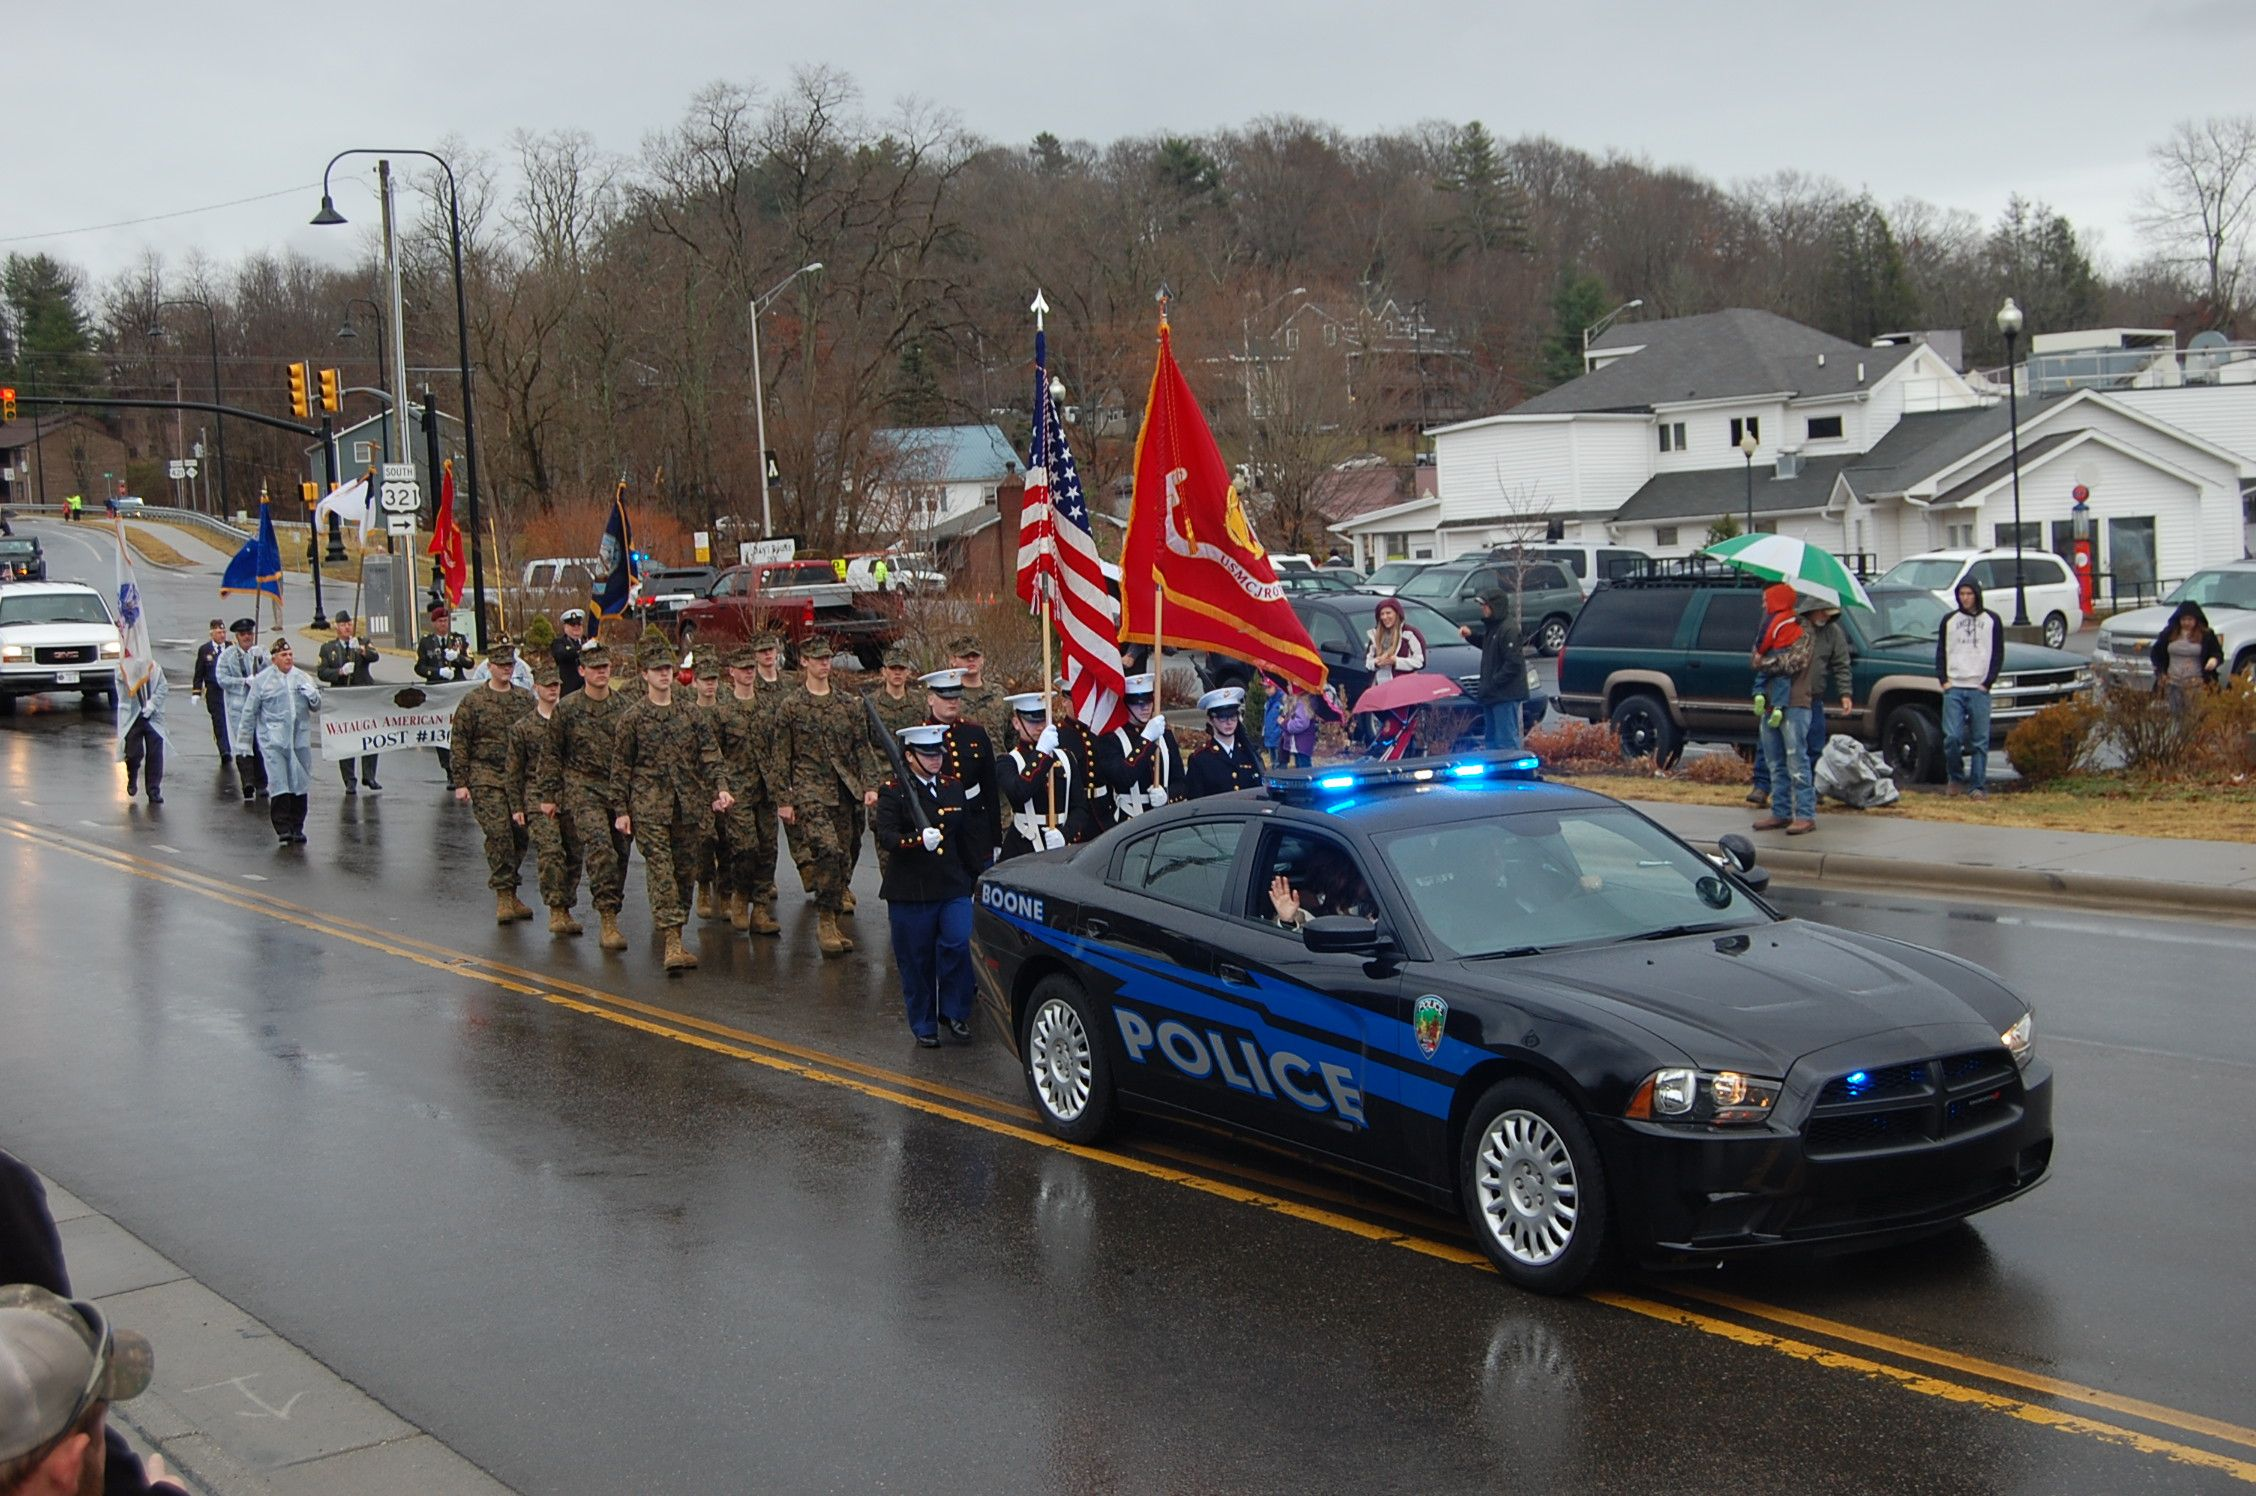 Boone Nc Christmas Parade 2019 Boone Christmas Parade 2014 Pictures & Video   WataugaOnline.com